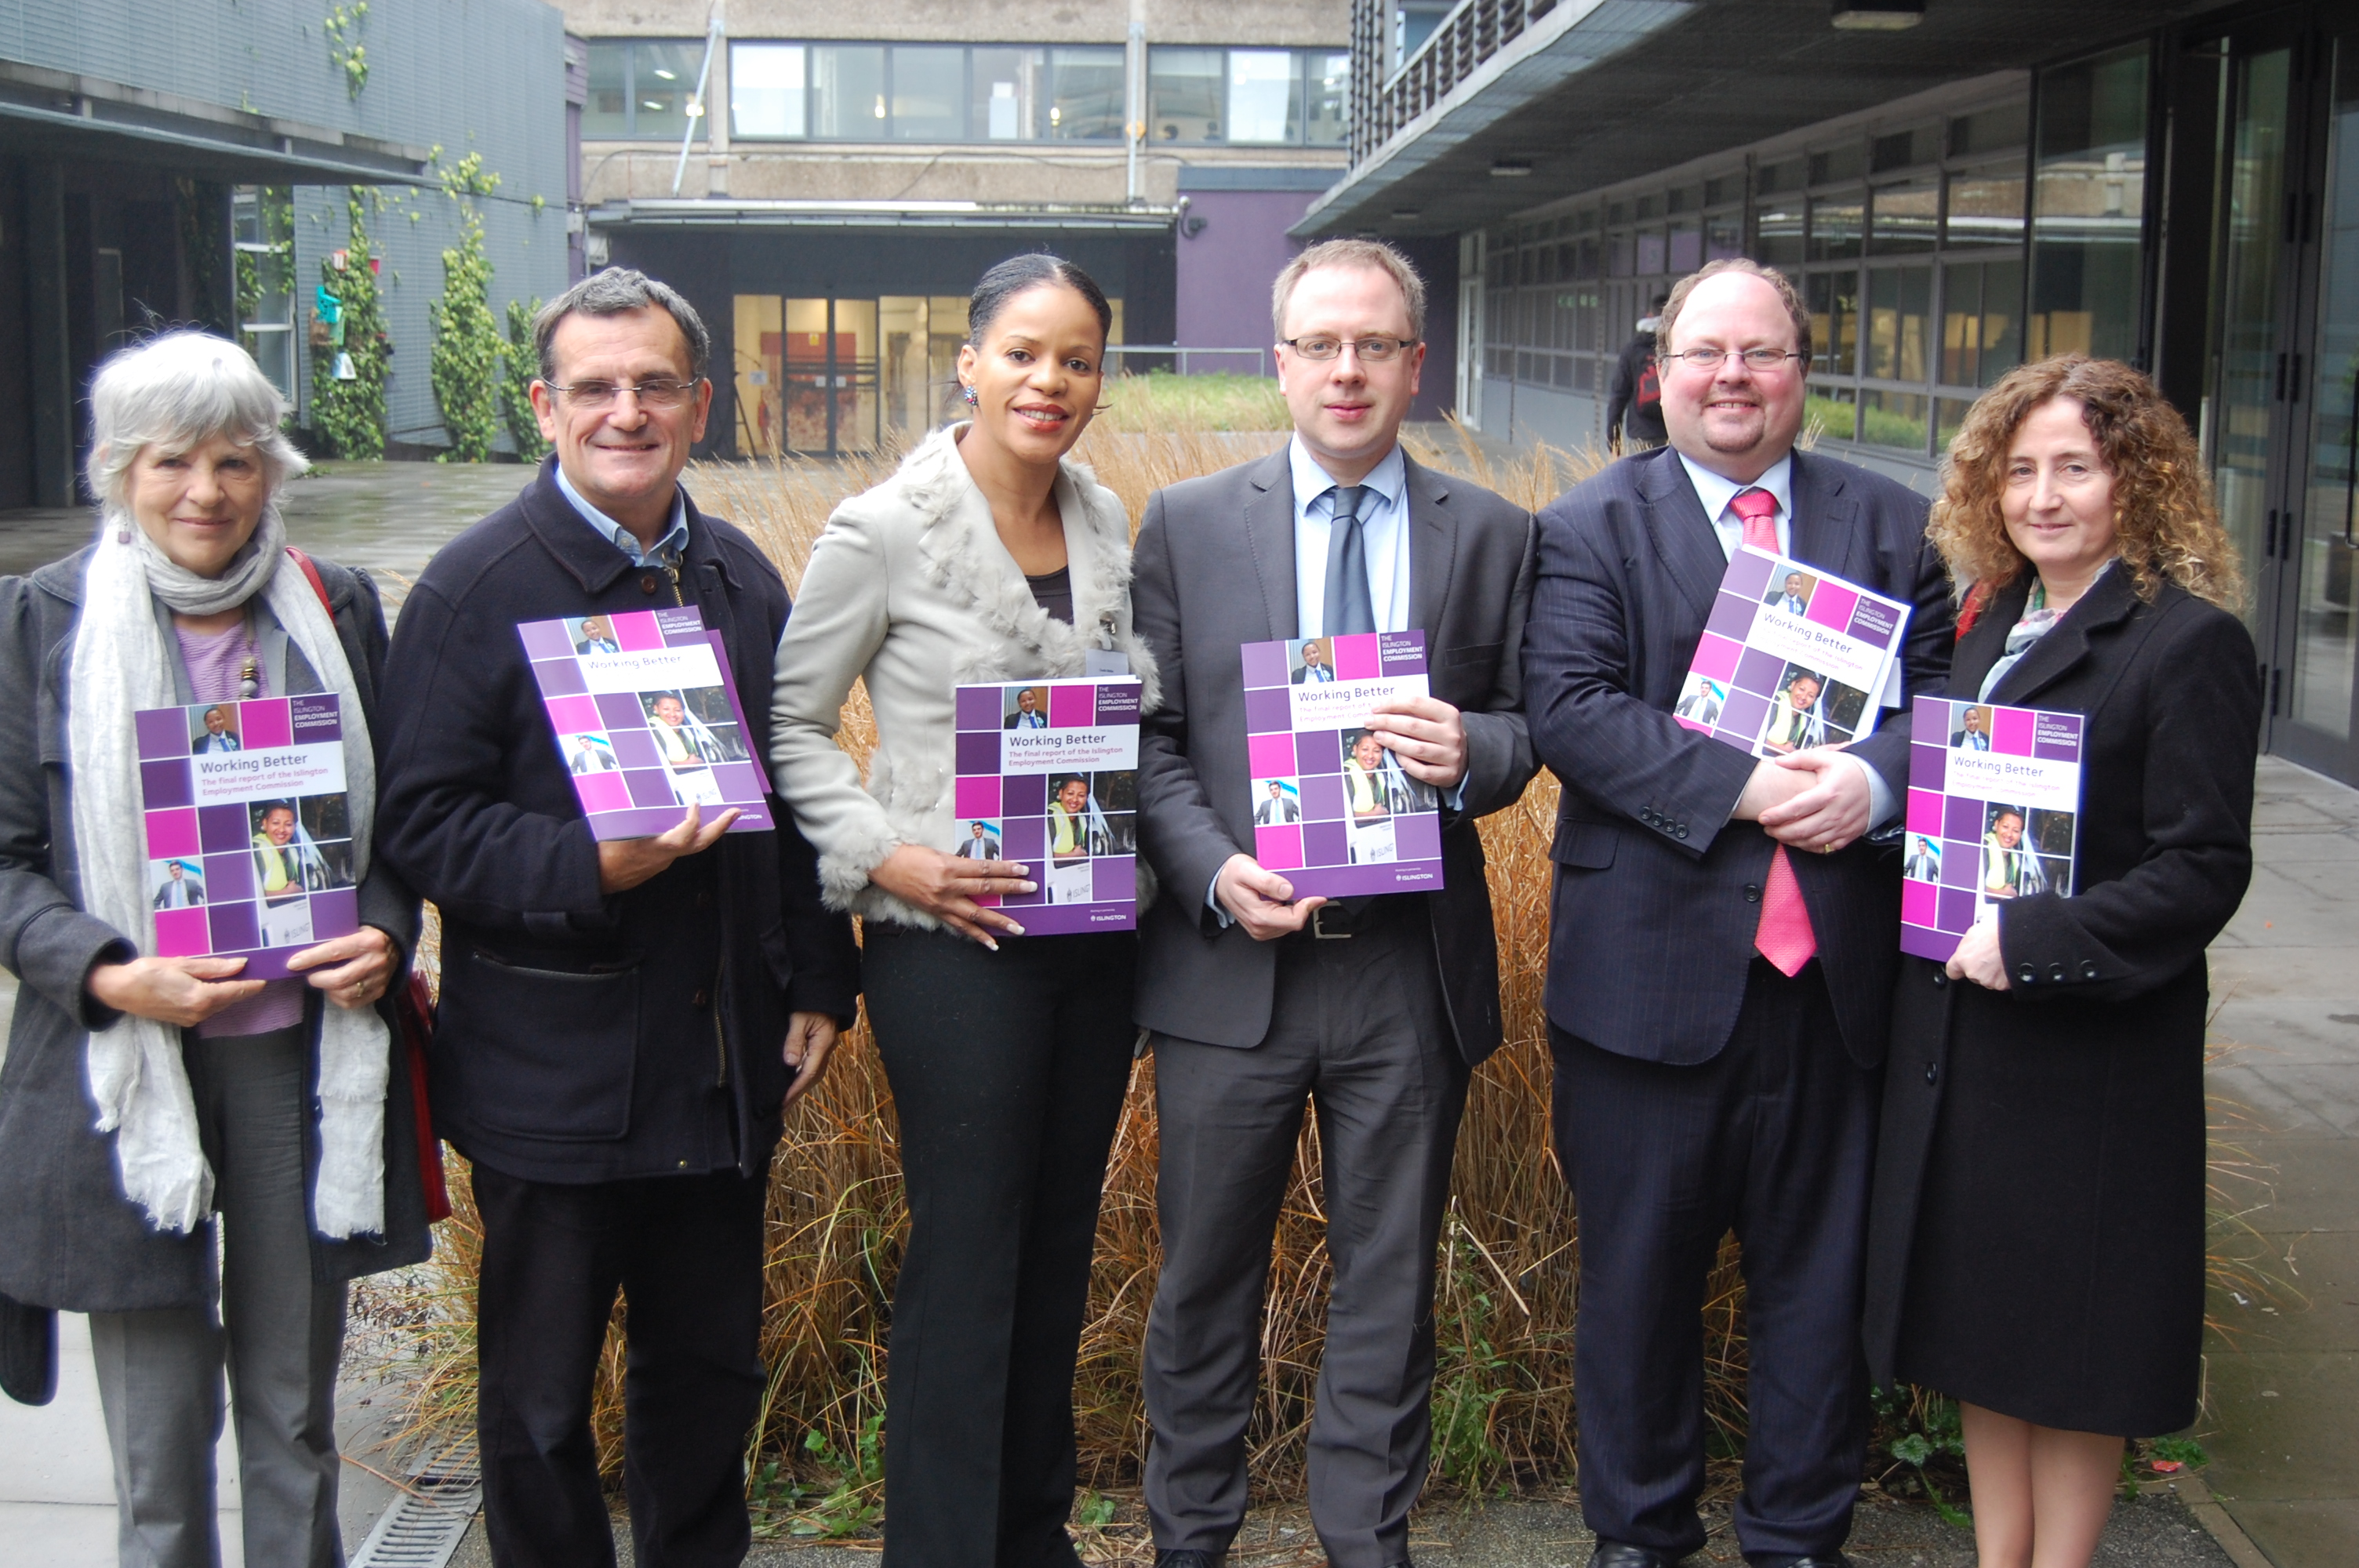 Councillors_at_launch_of_Islington_Employment_Commission.JPG